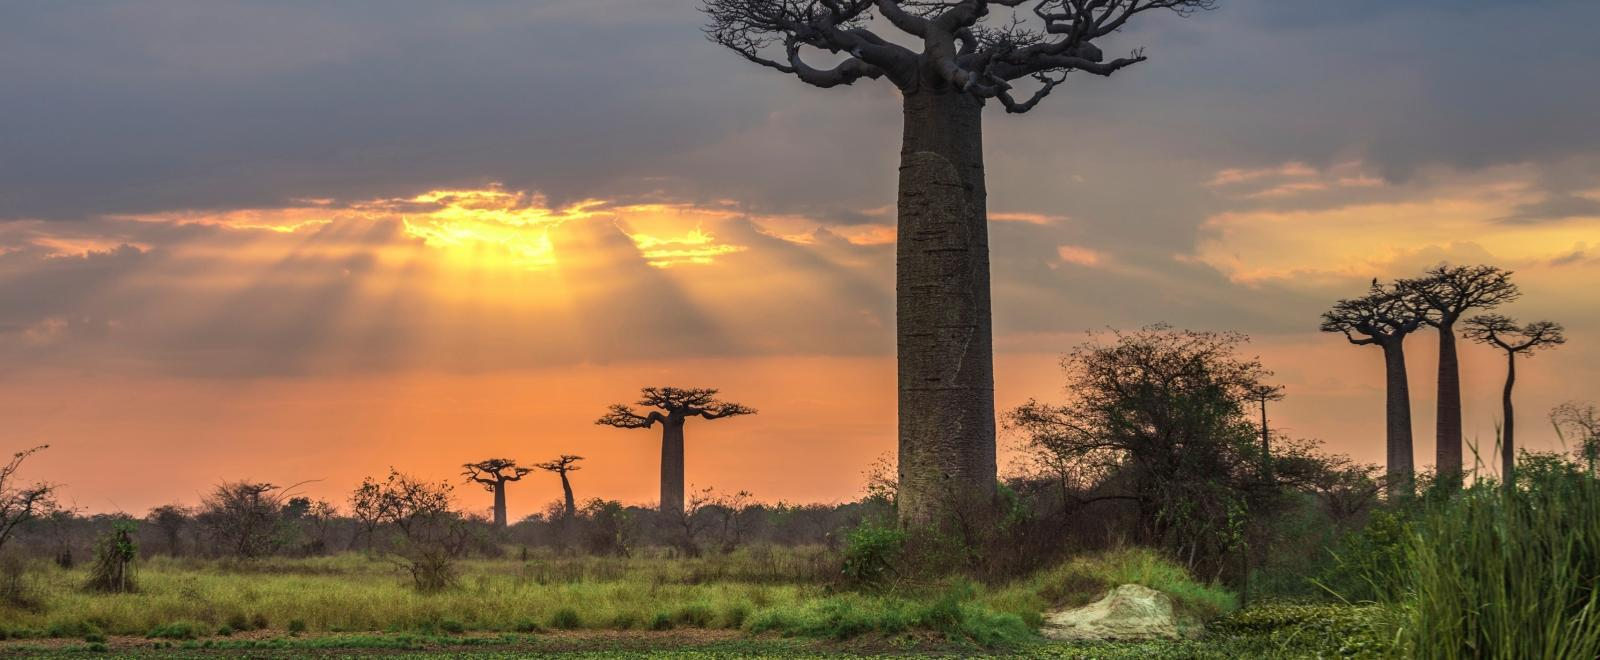 Projects Abroad volunteers pay a visit to the baobabs while volunteering in Madagascar.